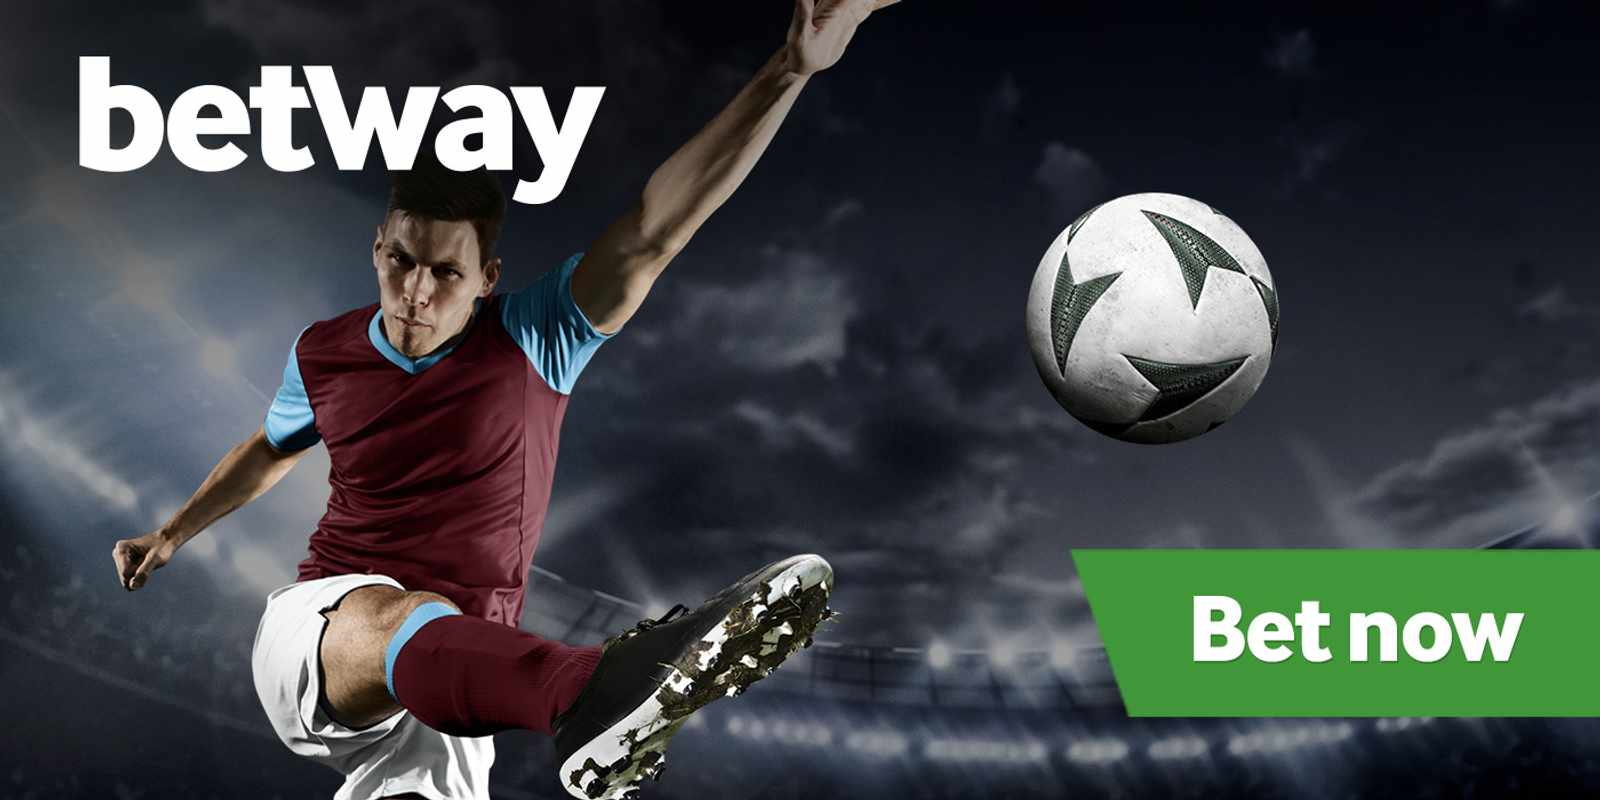 Your sports calendar for April brought to you by Betway